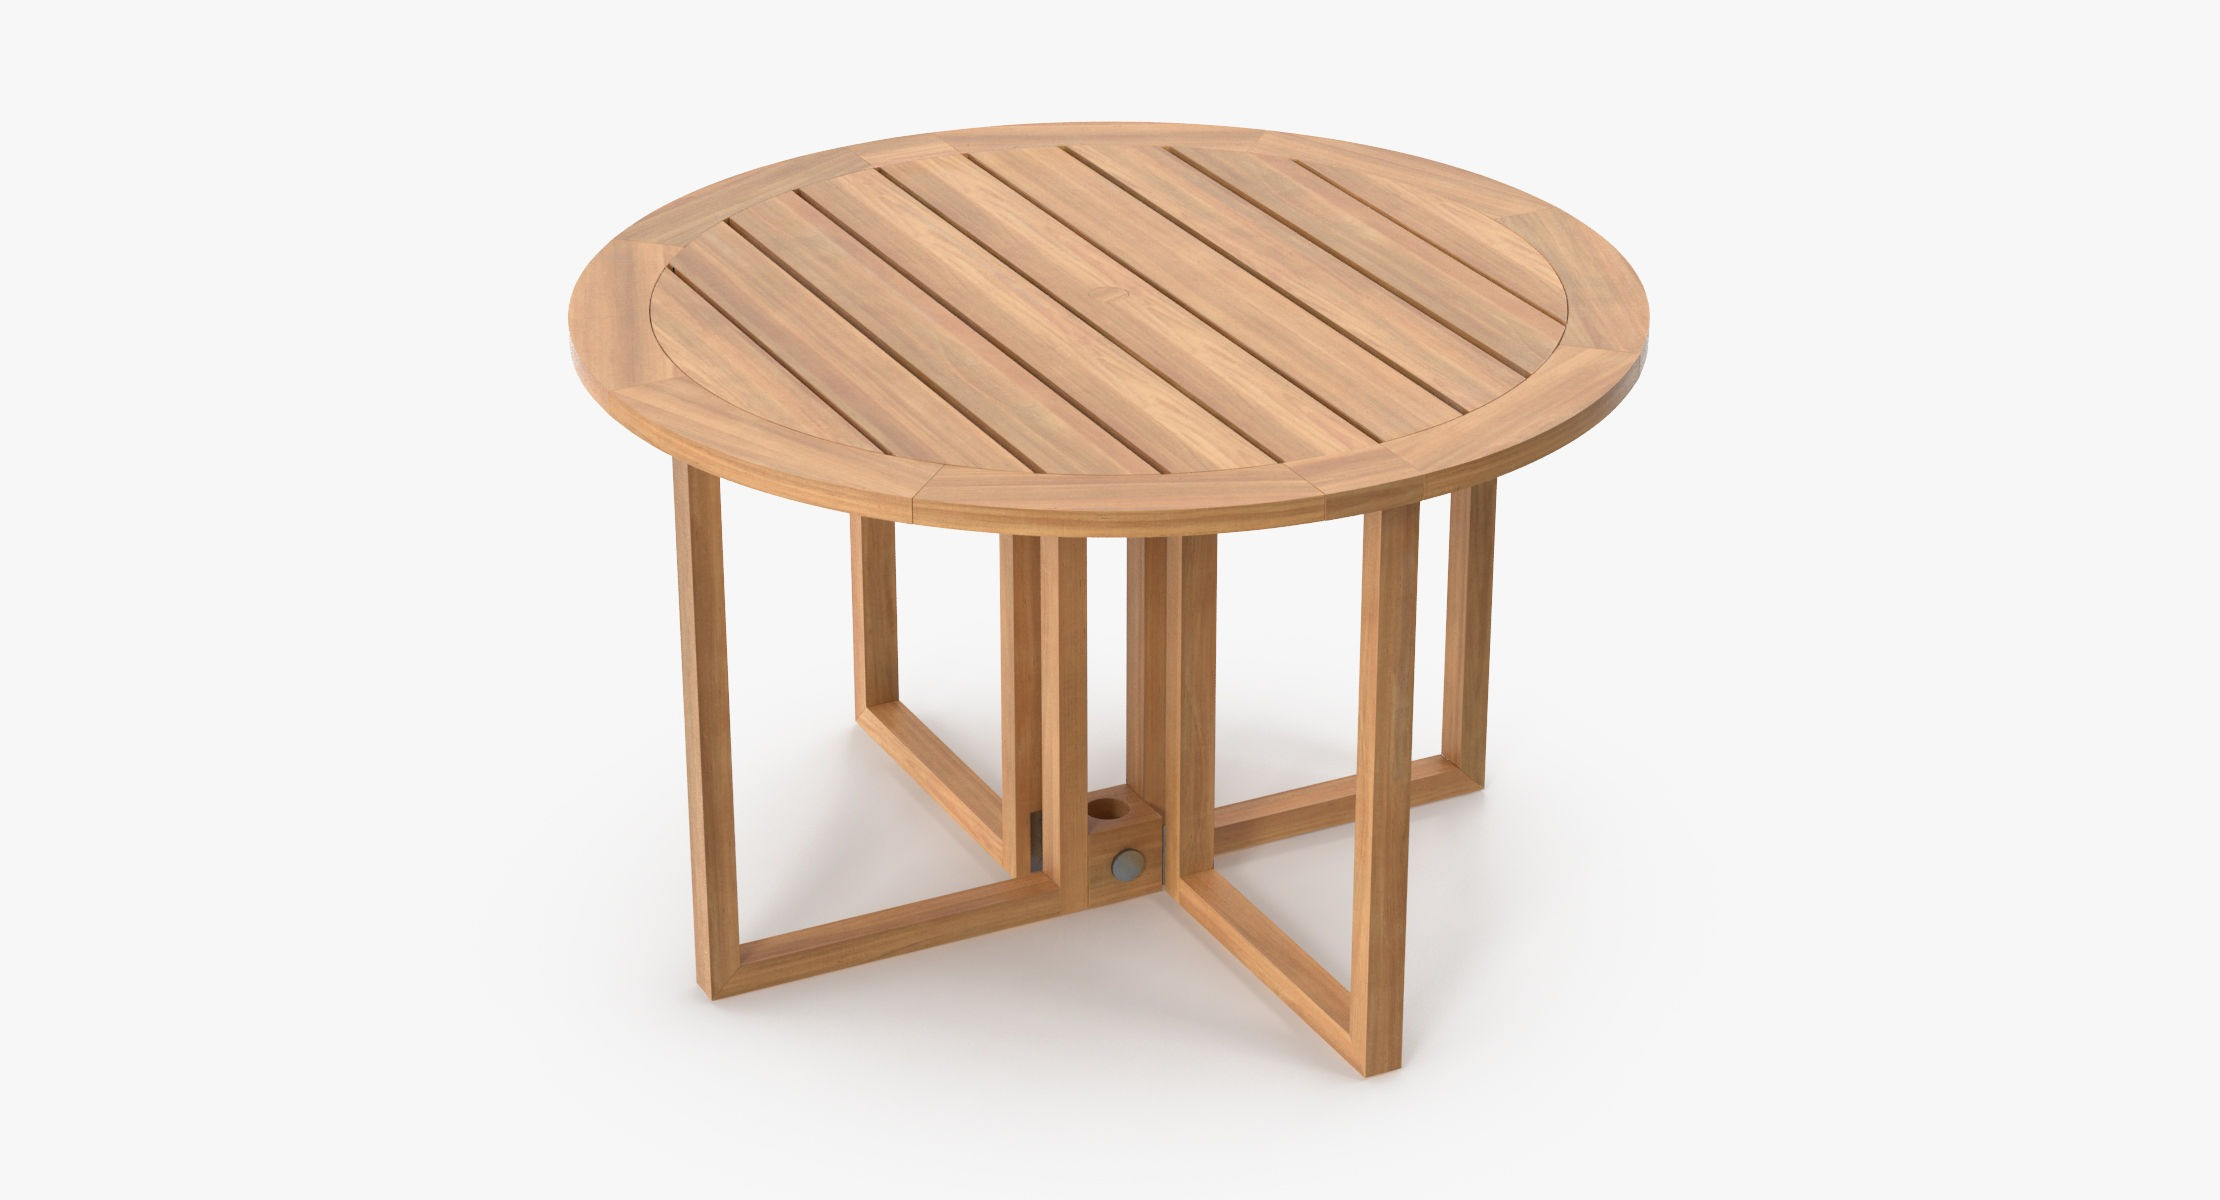 Patio dining table round (seats 6) 02 - reel 1